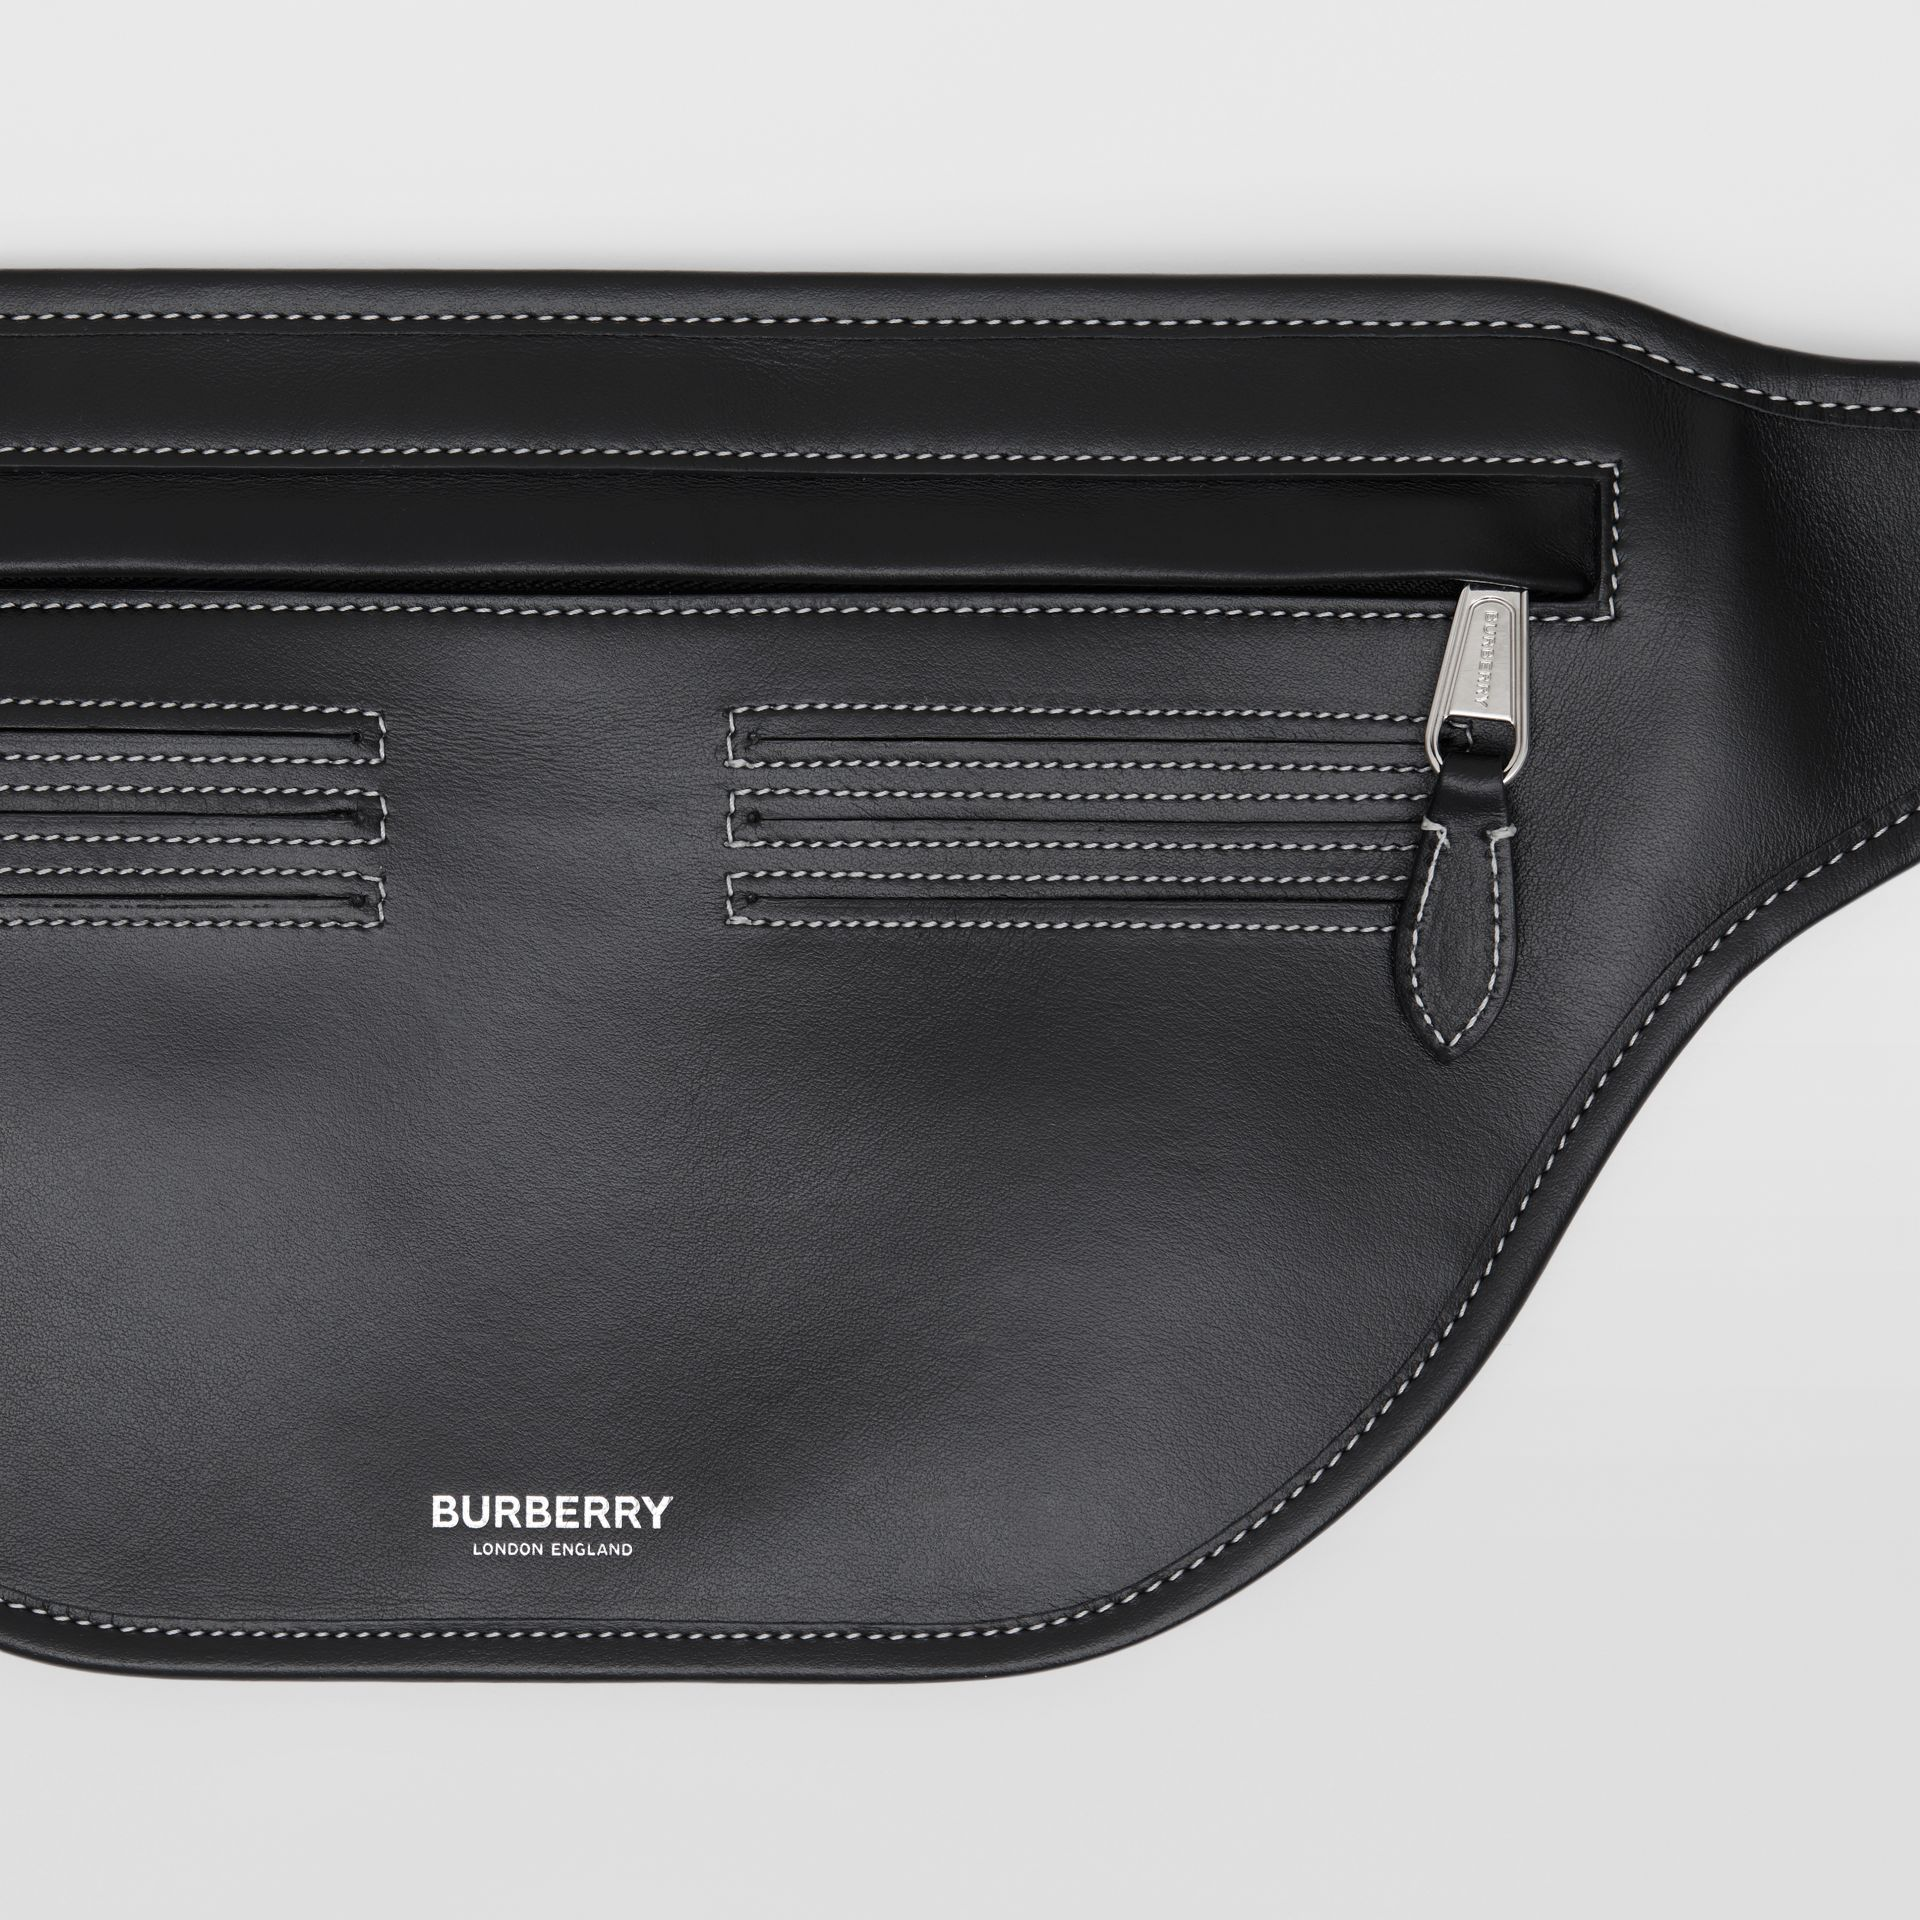 Topstitched Leather Brummell Bum Bag in Black | Burberry - gallery image 1